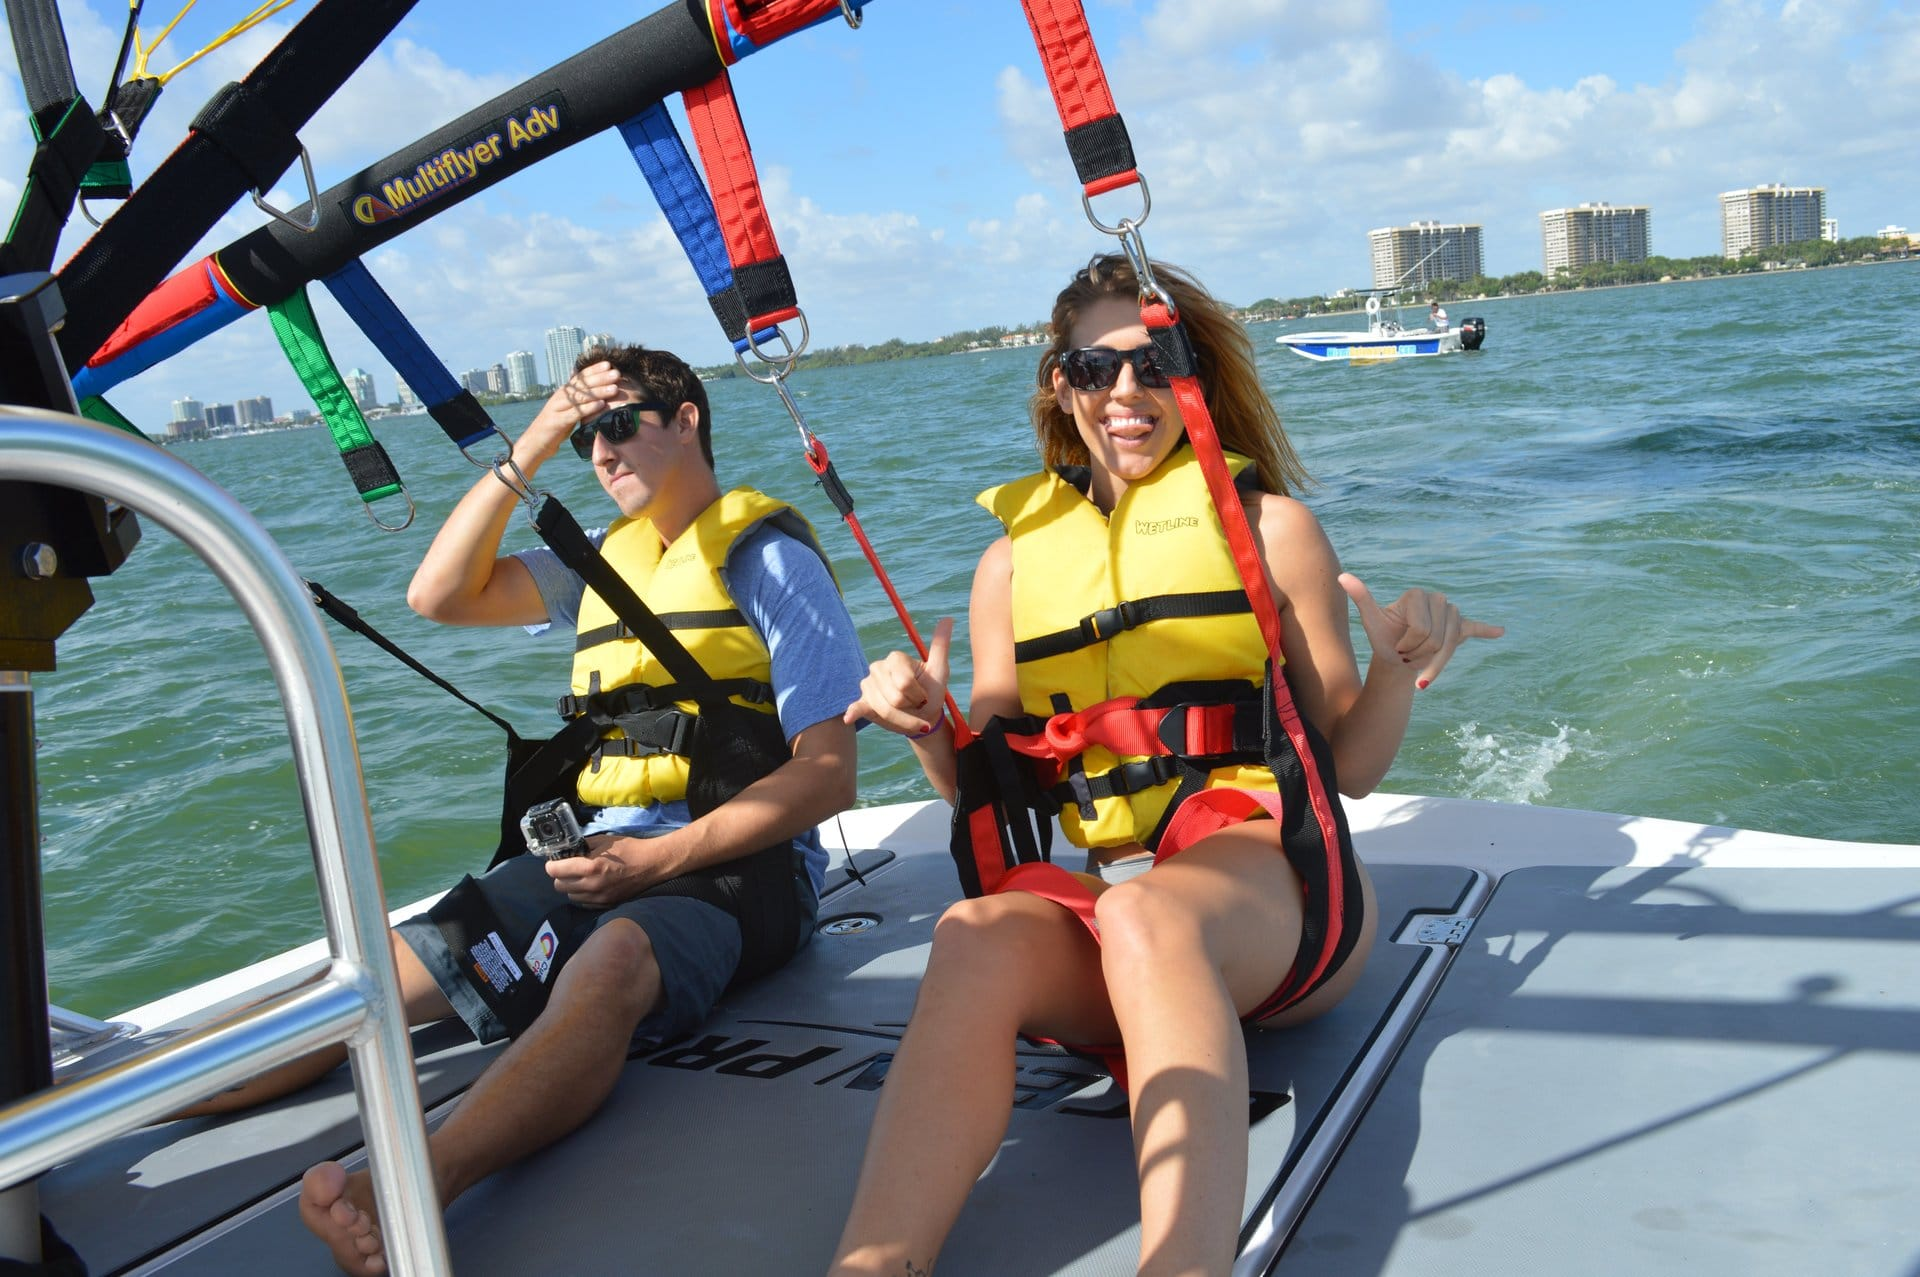 Riders before parasailing in Miami